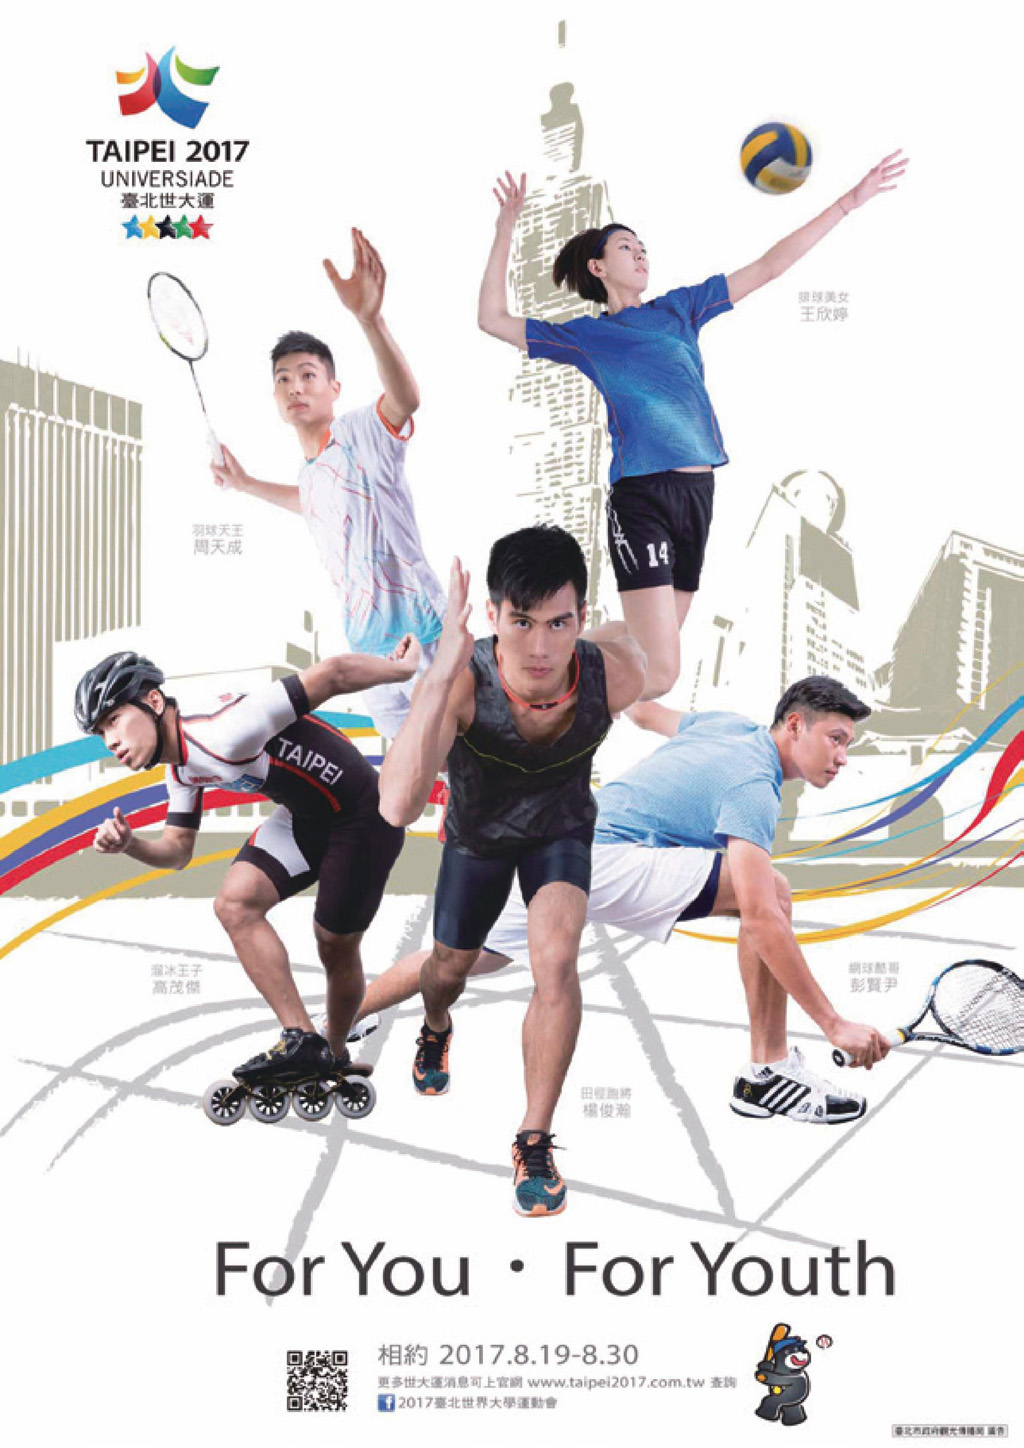 APEC Sports Newsletter Issue 1 April 2017